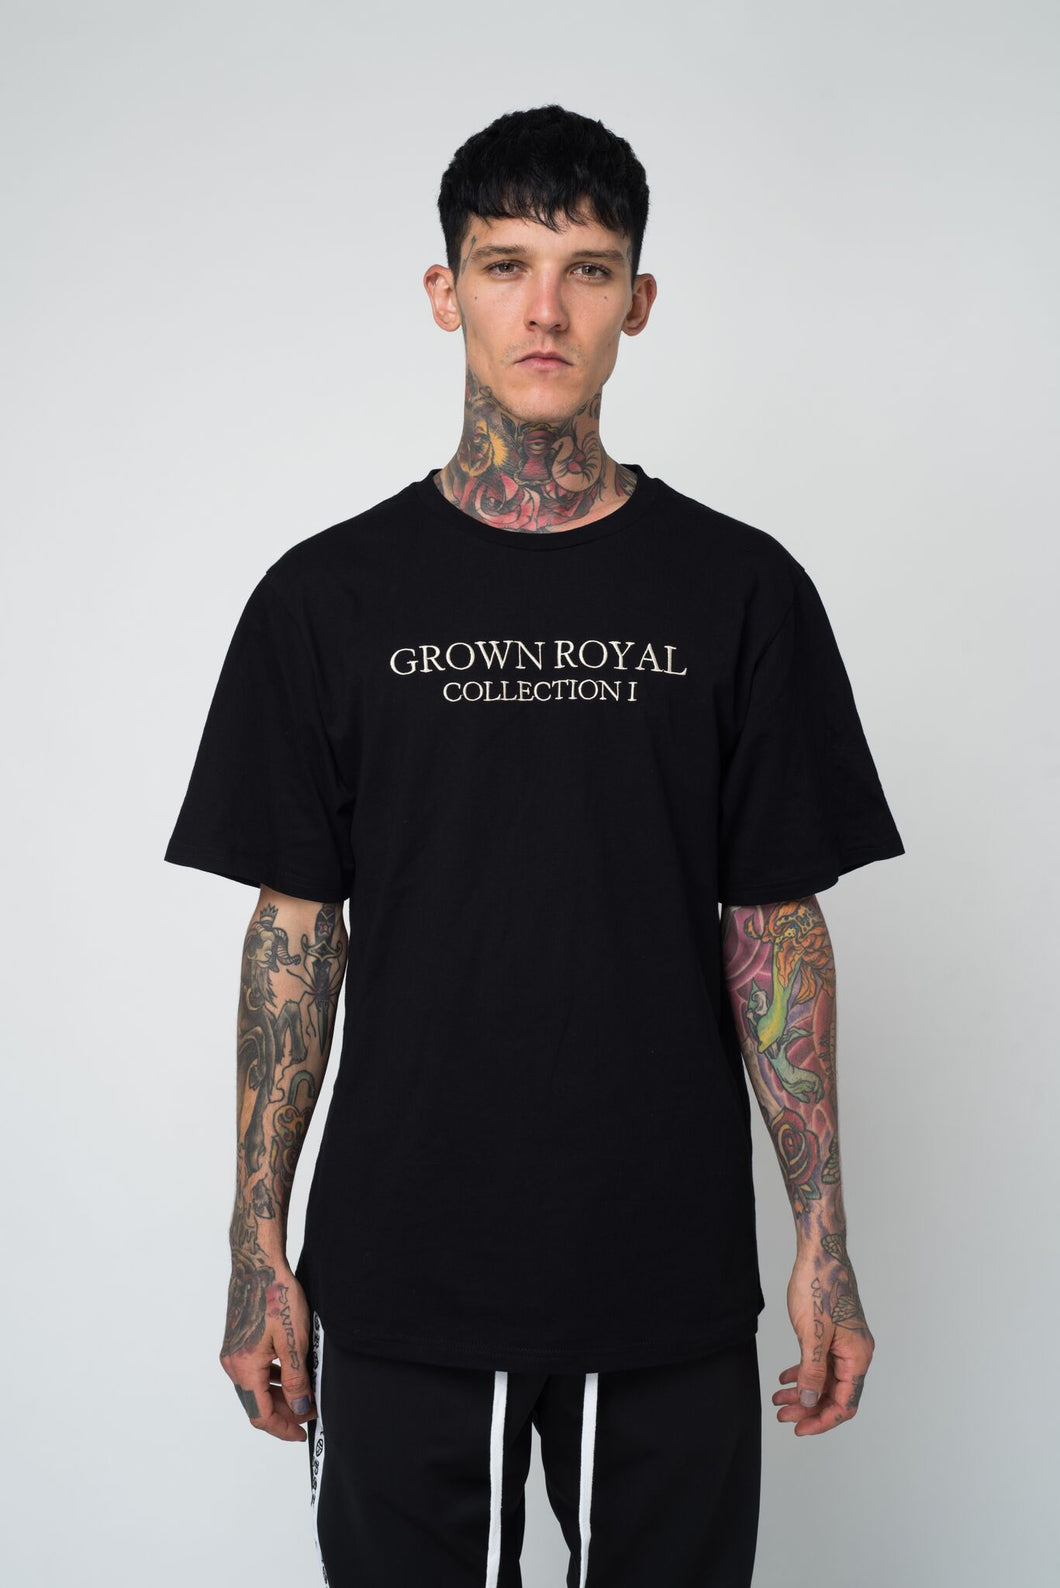 COLLECTION ONE T-SHIRT - BLACK - GROWN ROYAL